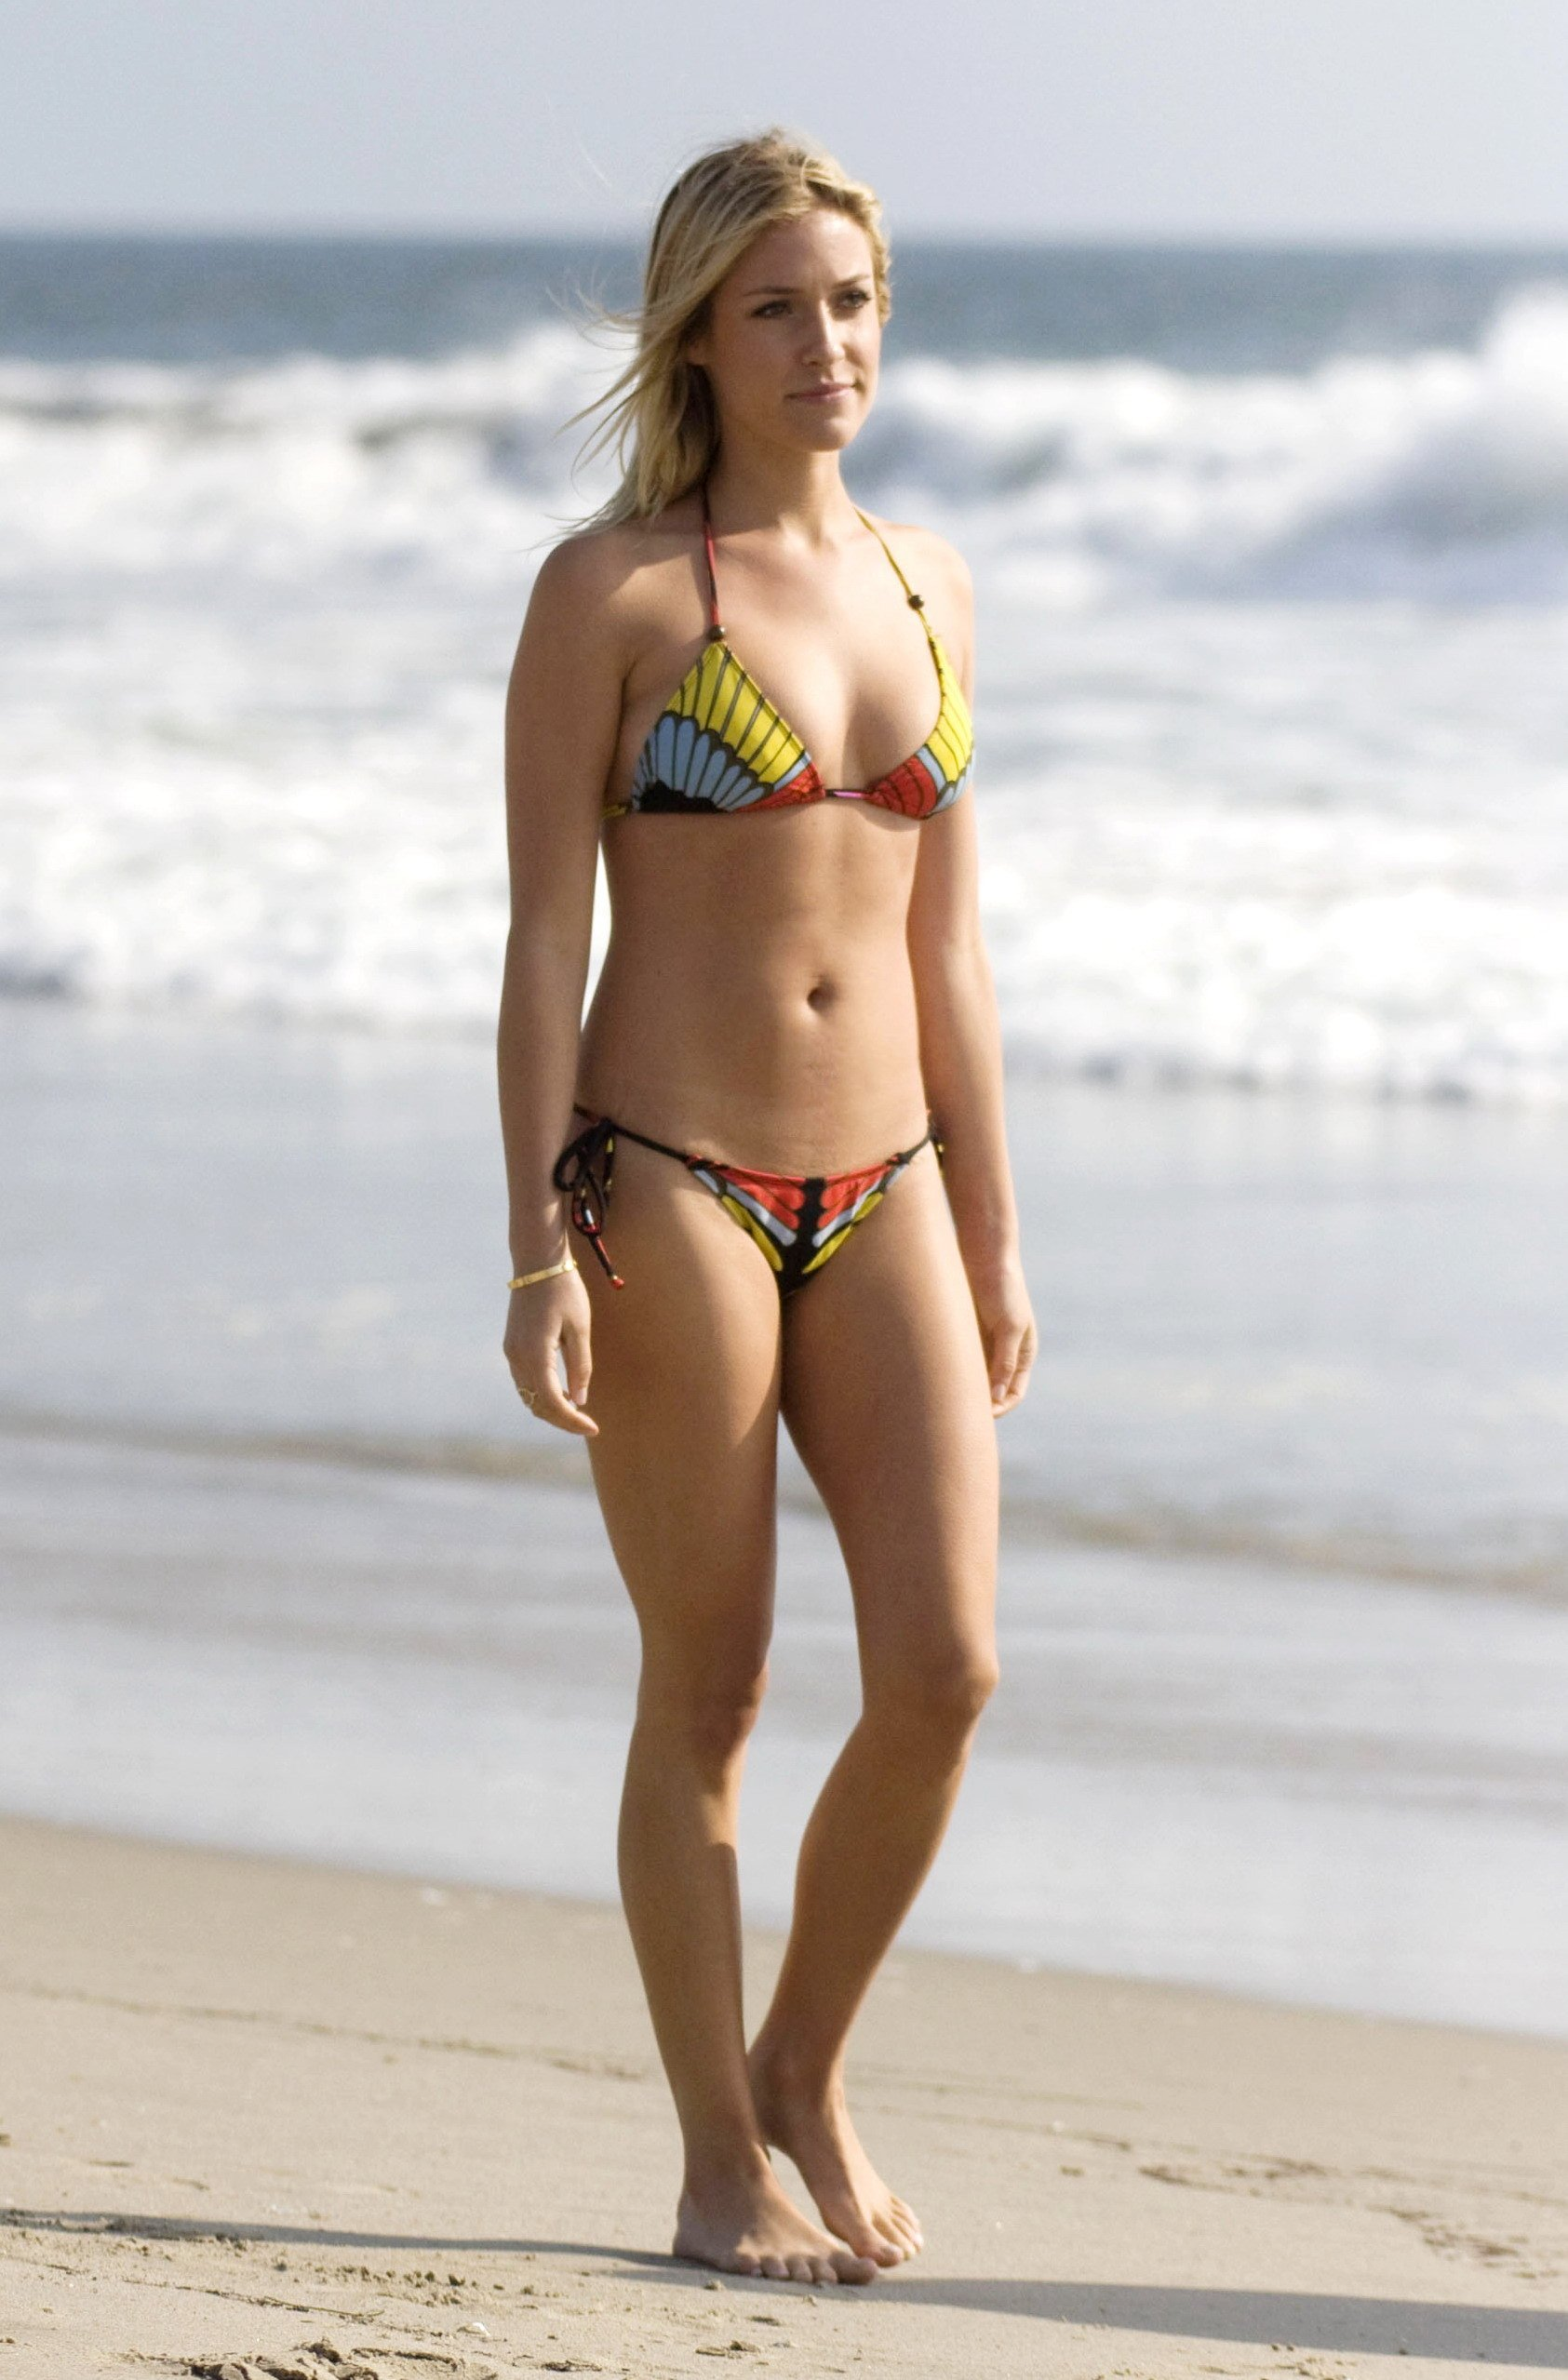 Kate upton fappening pictures